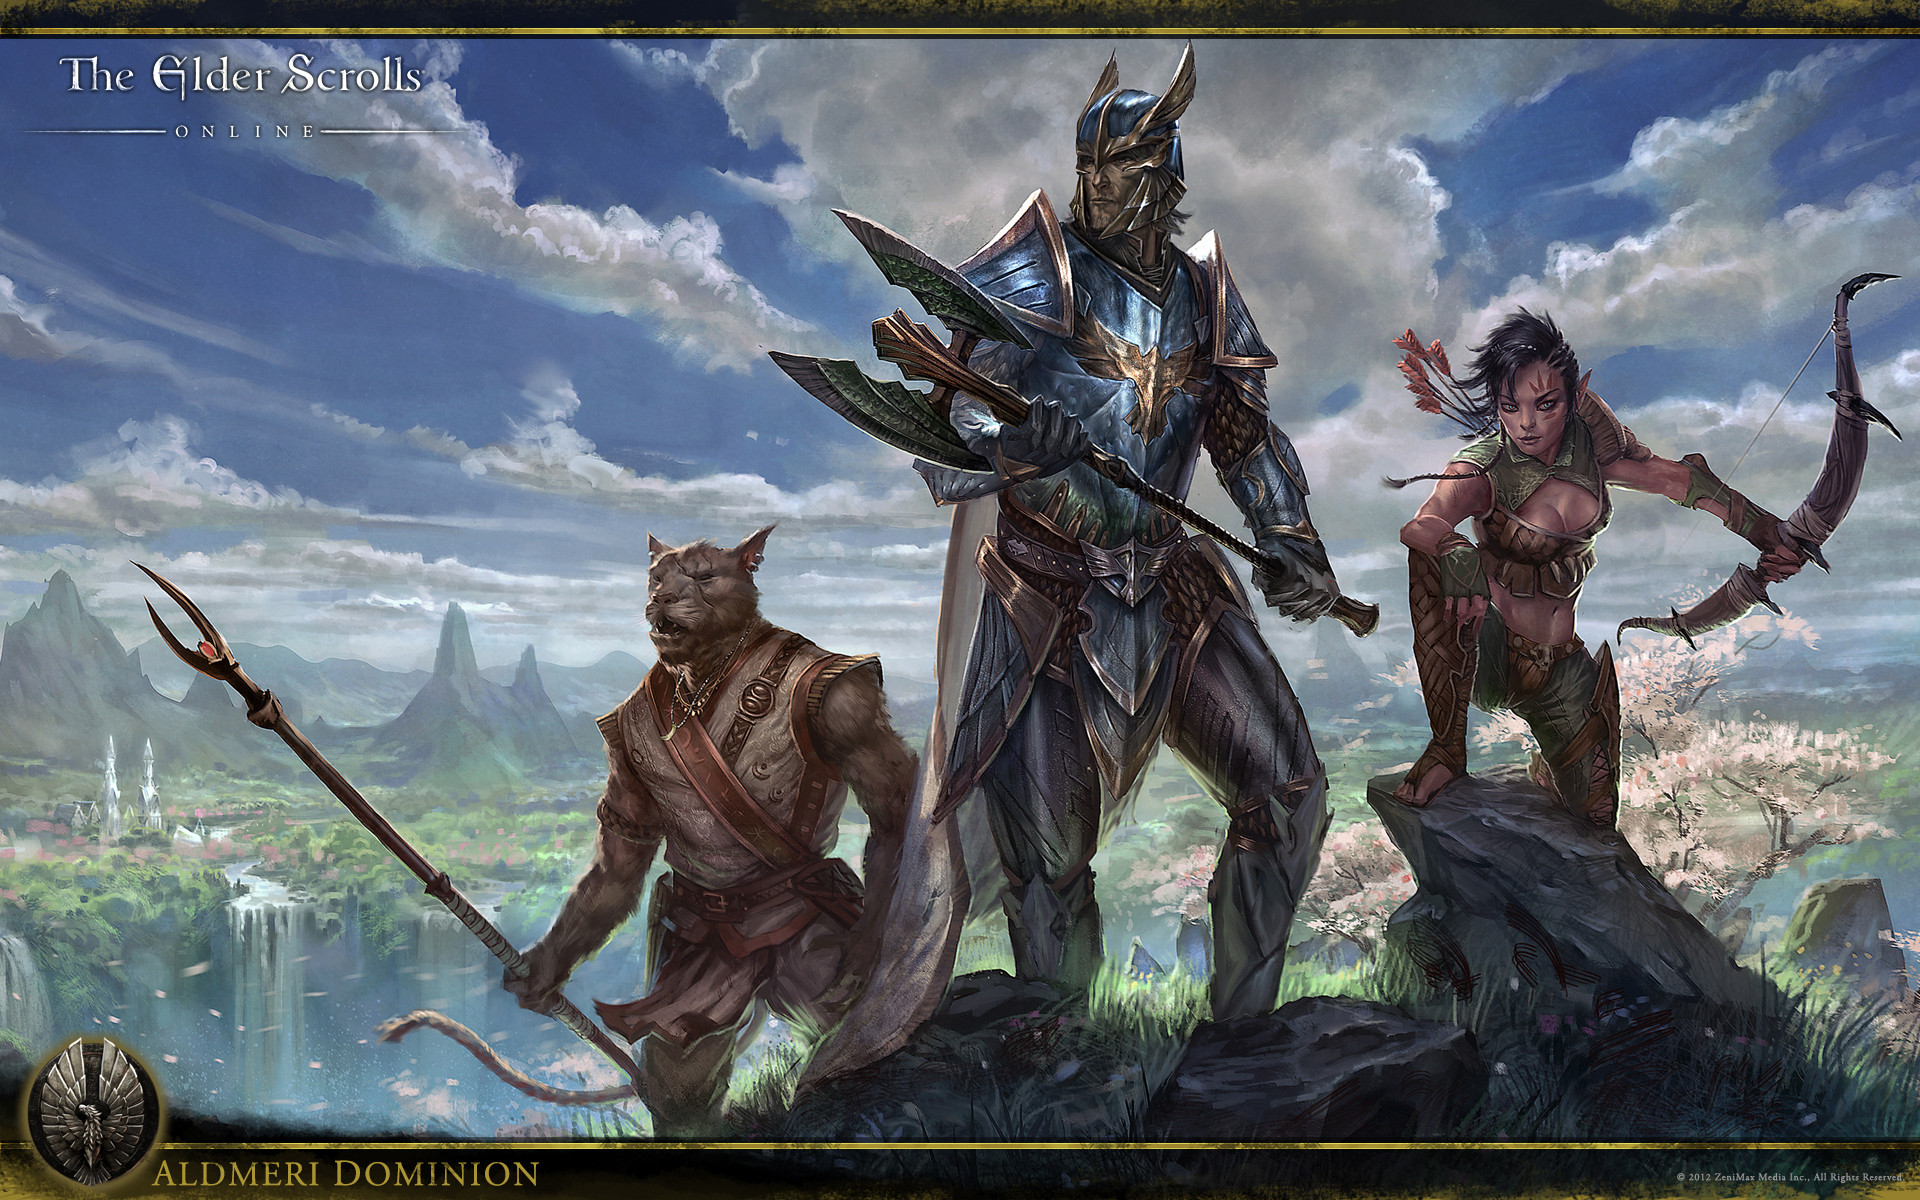 The Elder Scrolls Online Wallpaper Concept Art Concept Art World 1920x1200